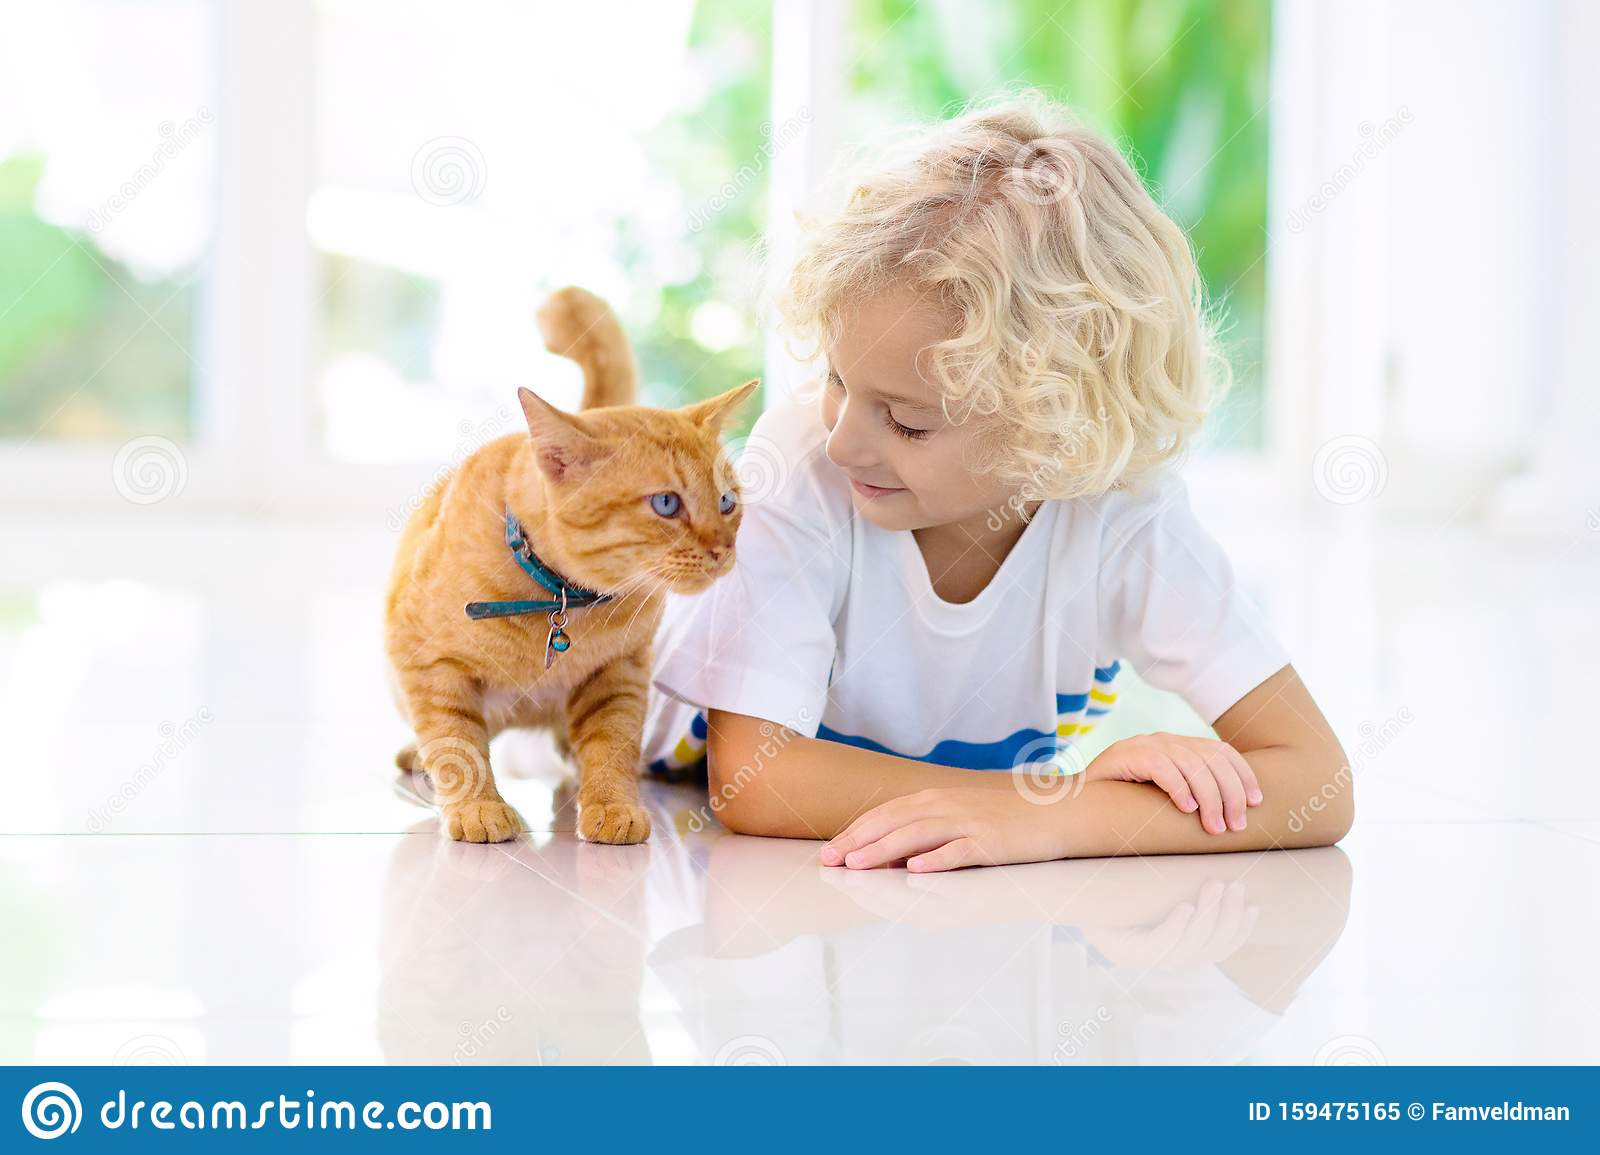 Child Feeding Home Cat Kids And Pets Stock Image Image Of Domestic Kitten 159475165